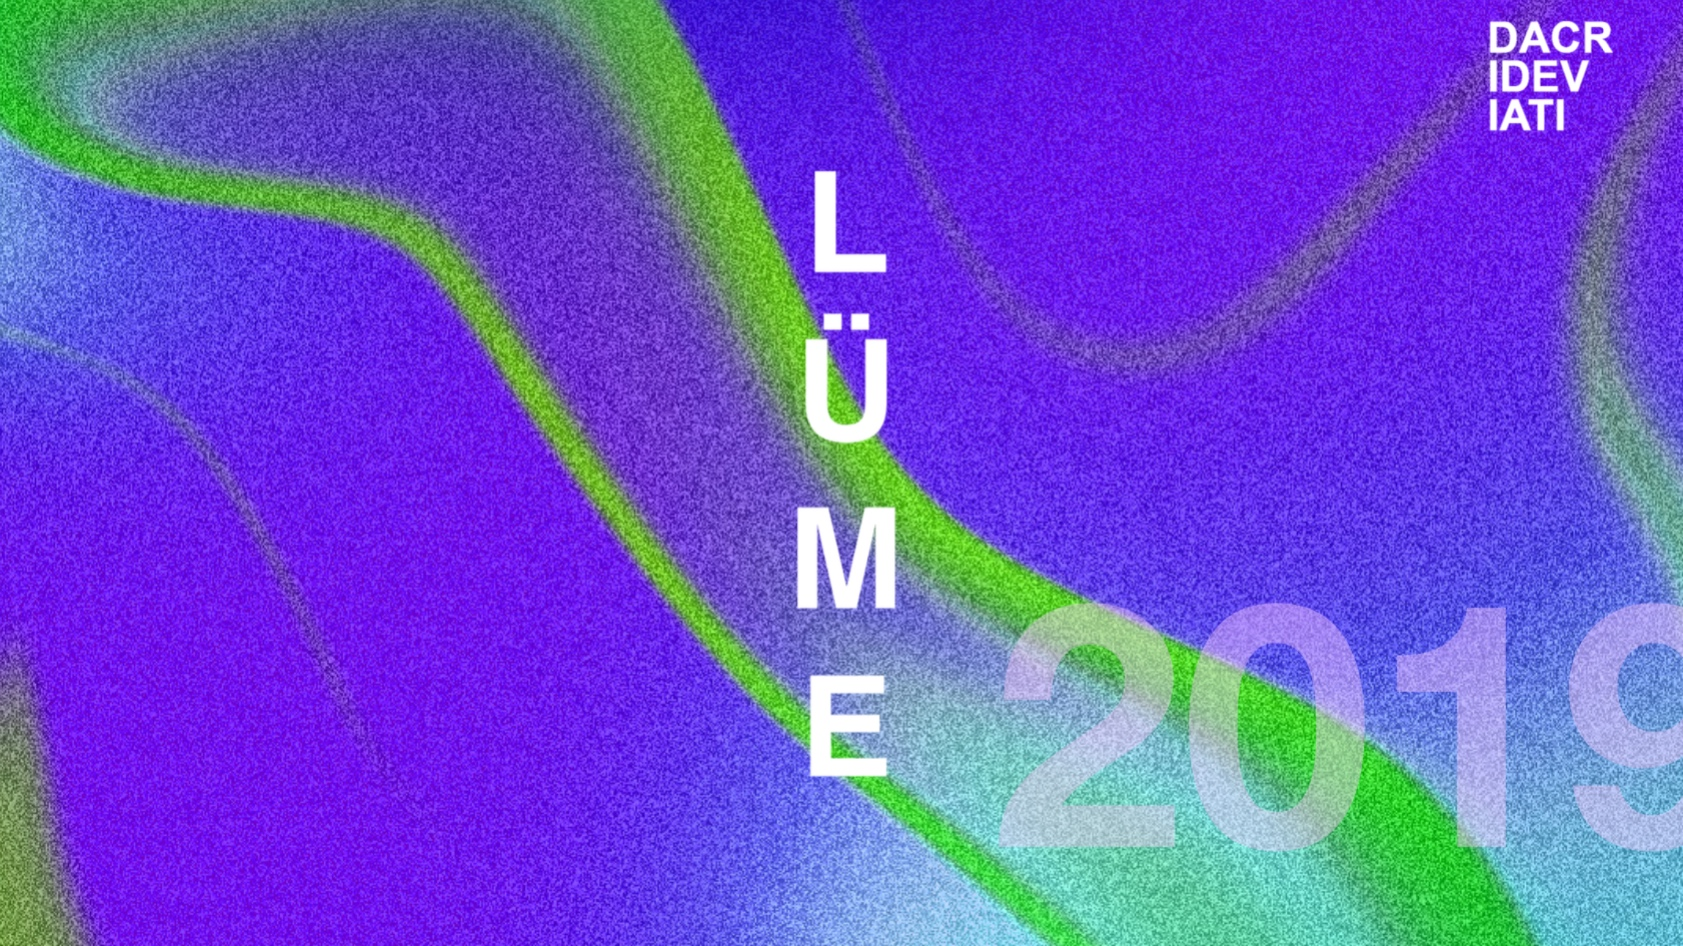 LUME _ apr 2019   Privileged looks that are part of the construction of the main market movements for 2020/21, as well as a unique view on the role of fabrics, colors and adornments in the history of our culture. The LÜME will be the possibility to expand our perceptions about dressing.